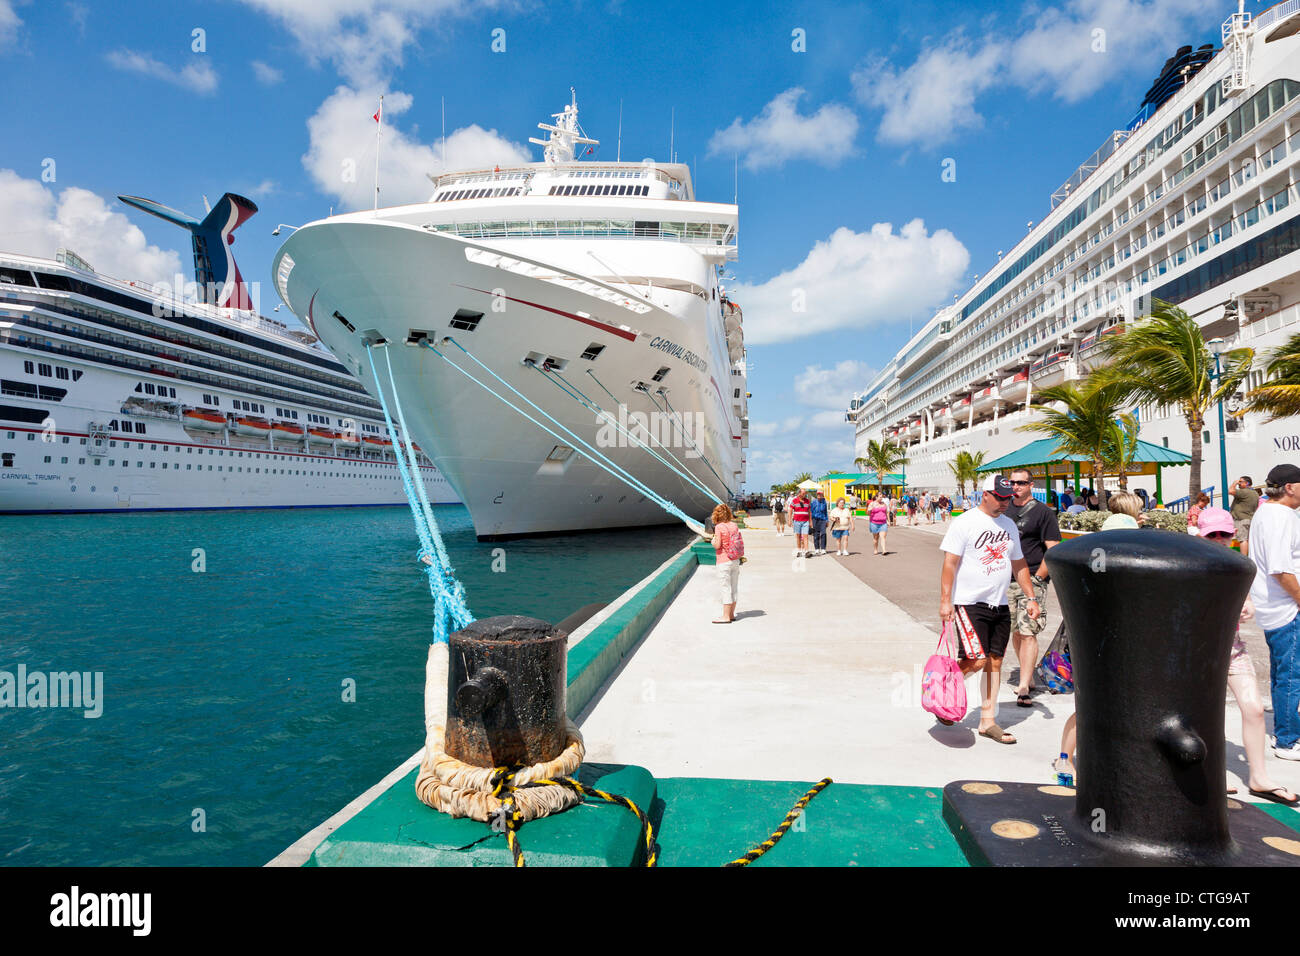 Carnival fascination cruise ship in port with other ships in nassau stock photo royalty free - Cruise port nassau bahamas ...